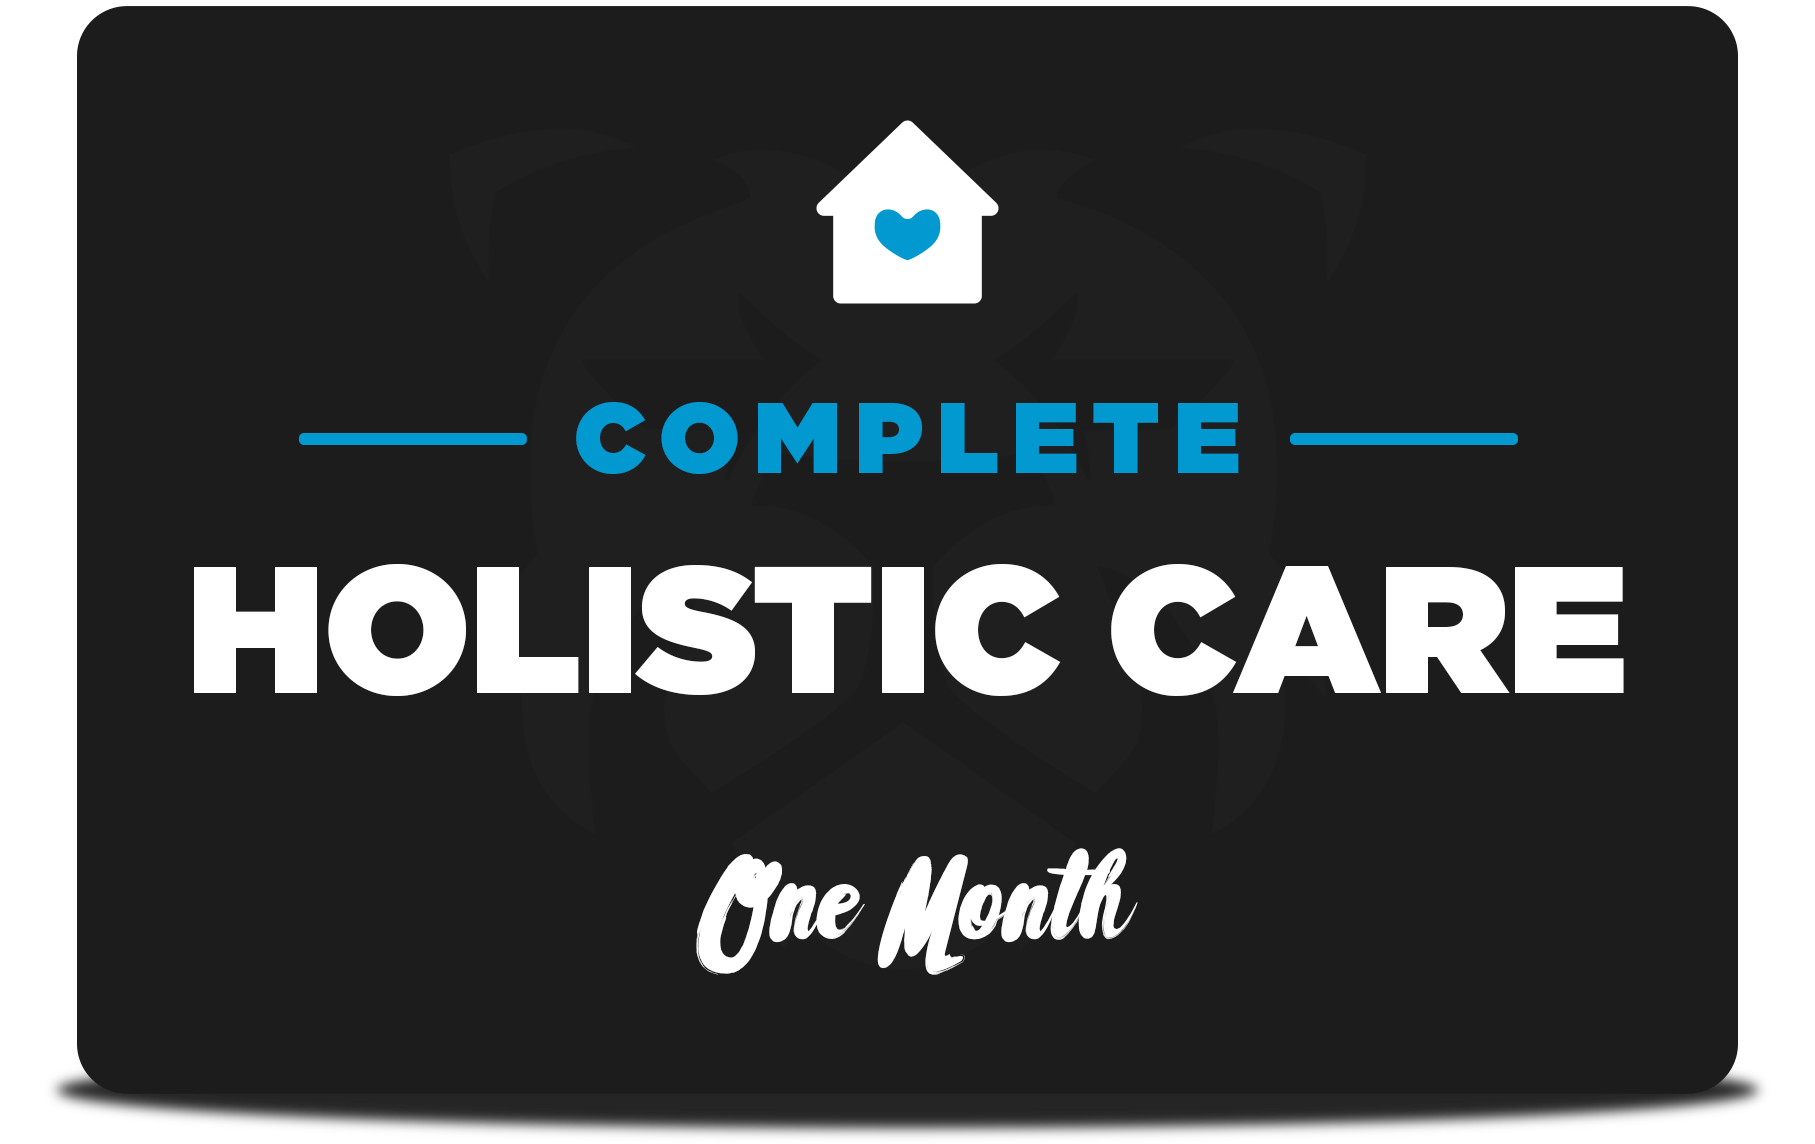 Complete Holistic Care